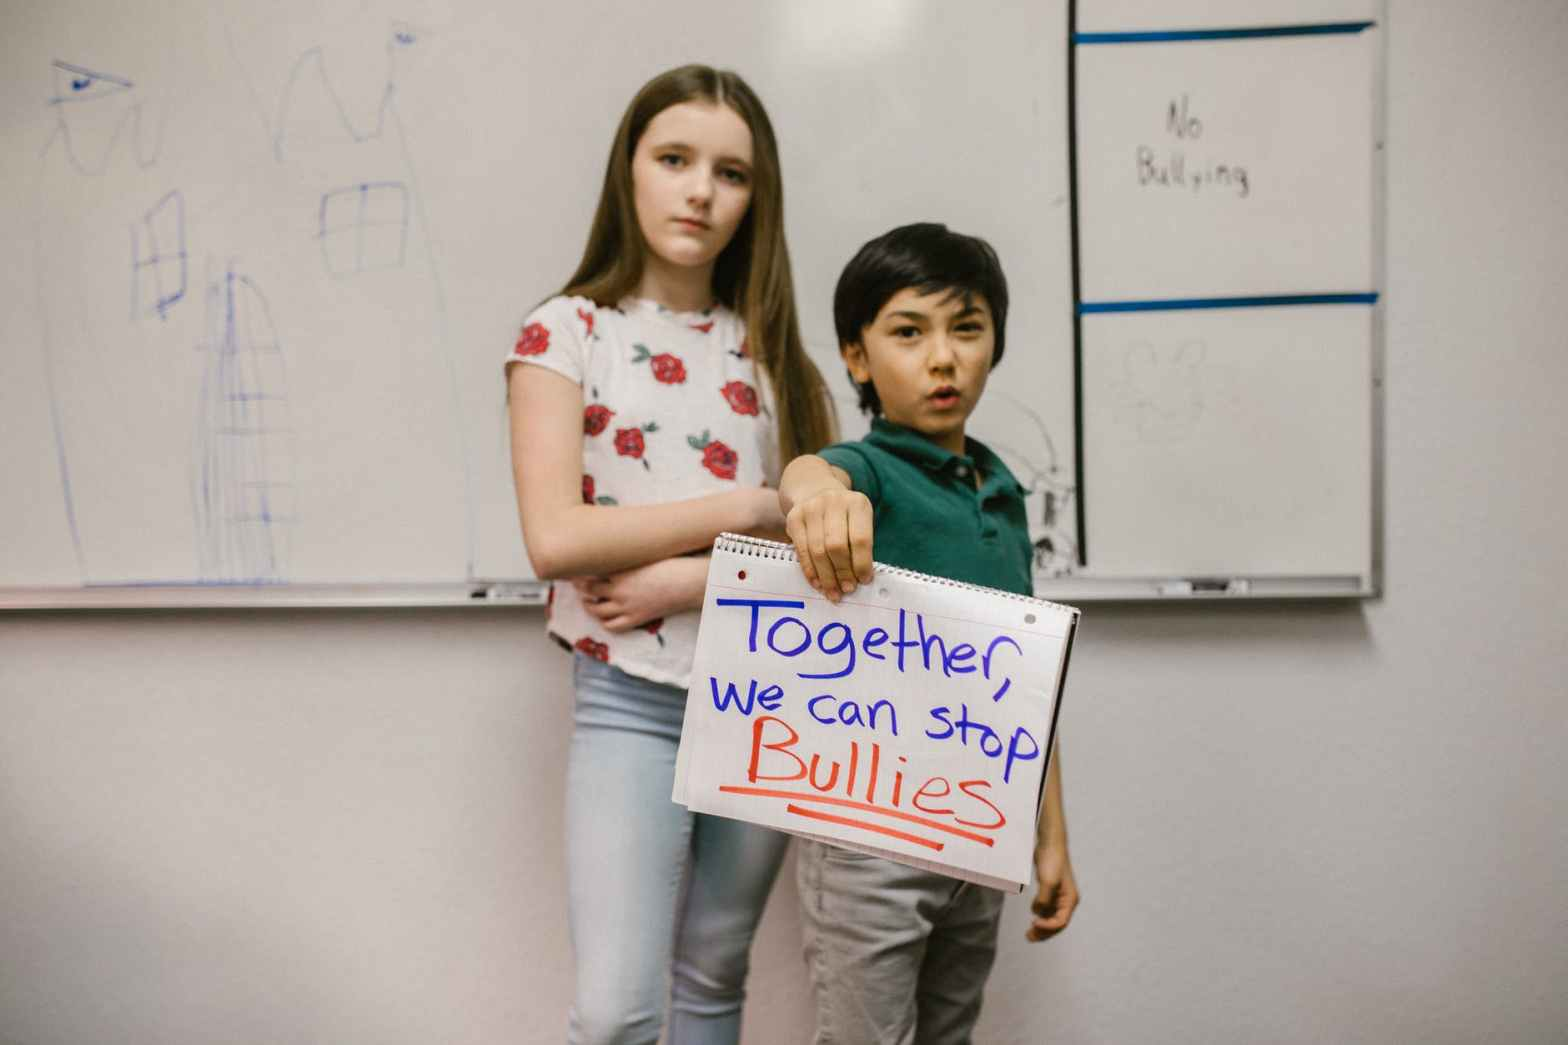 two students showing a message against bullying